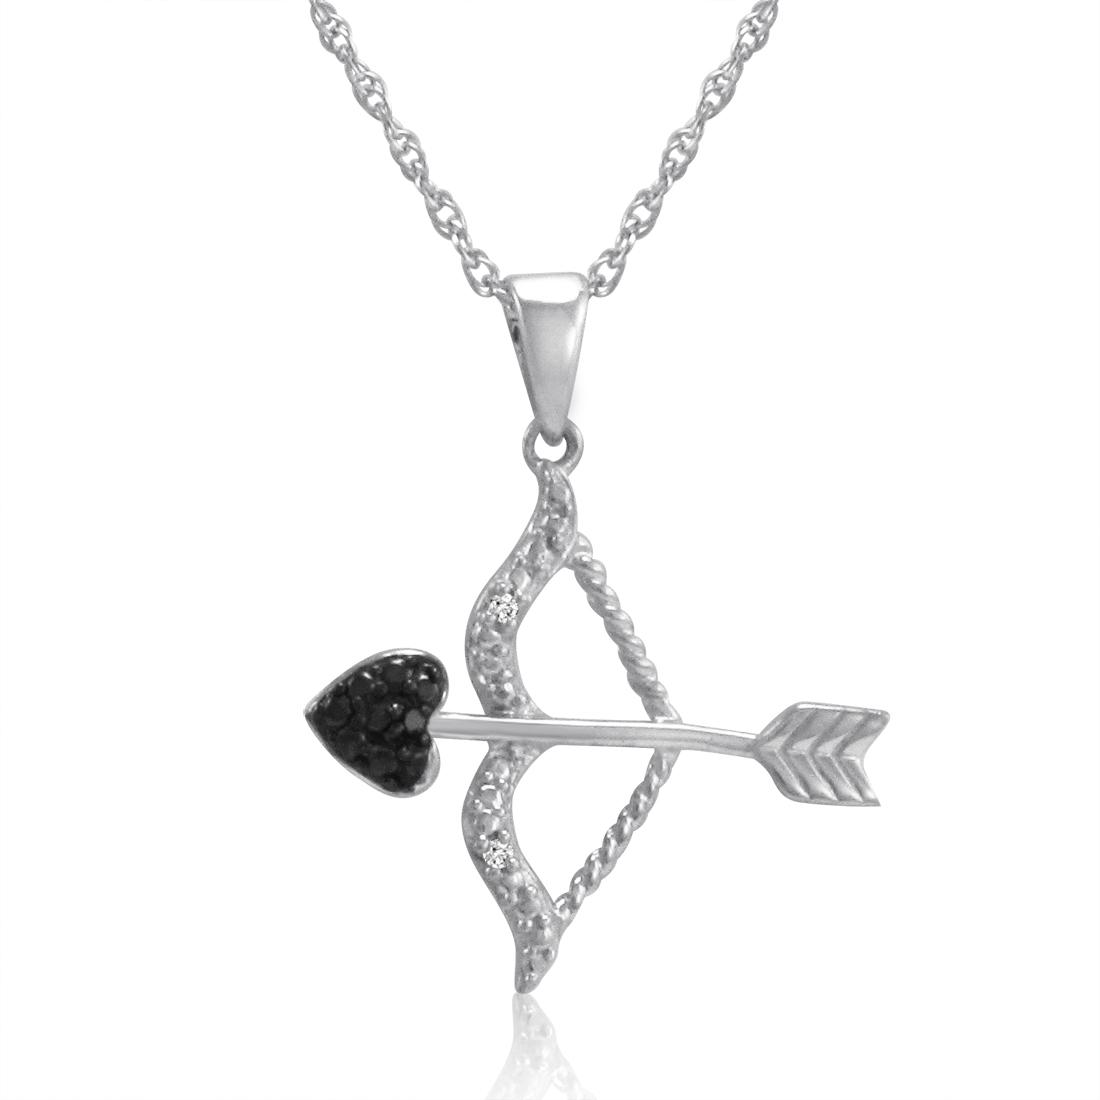 Amanda Rose Black and white diamond Bow and Arrow Pendant in Sterling Silver